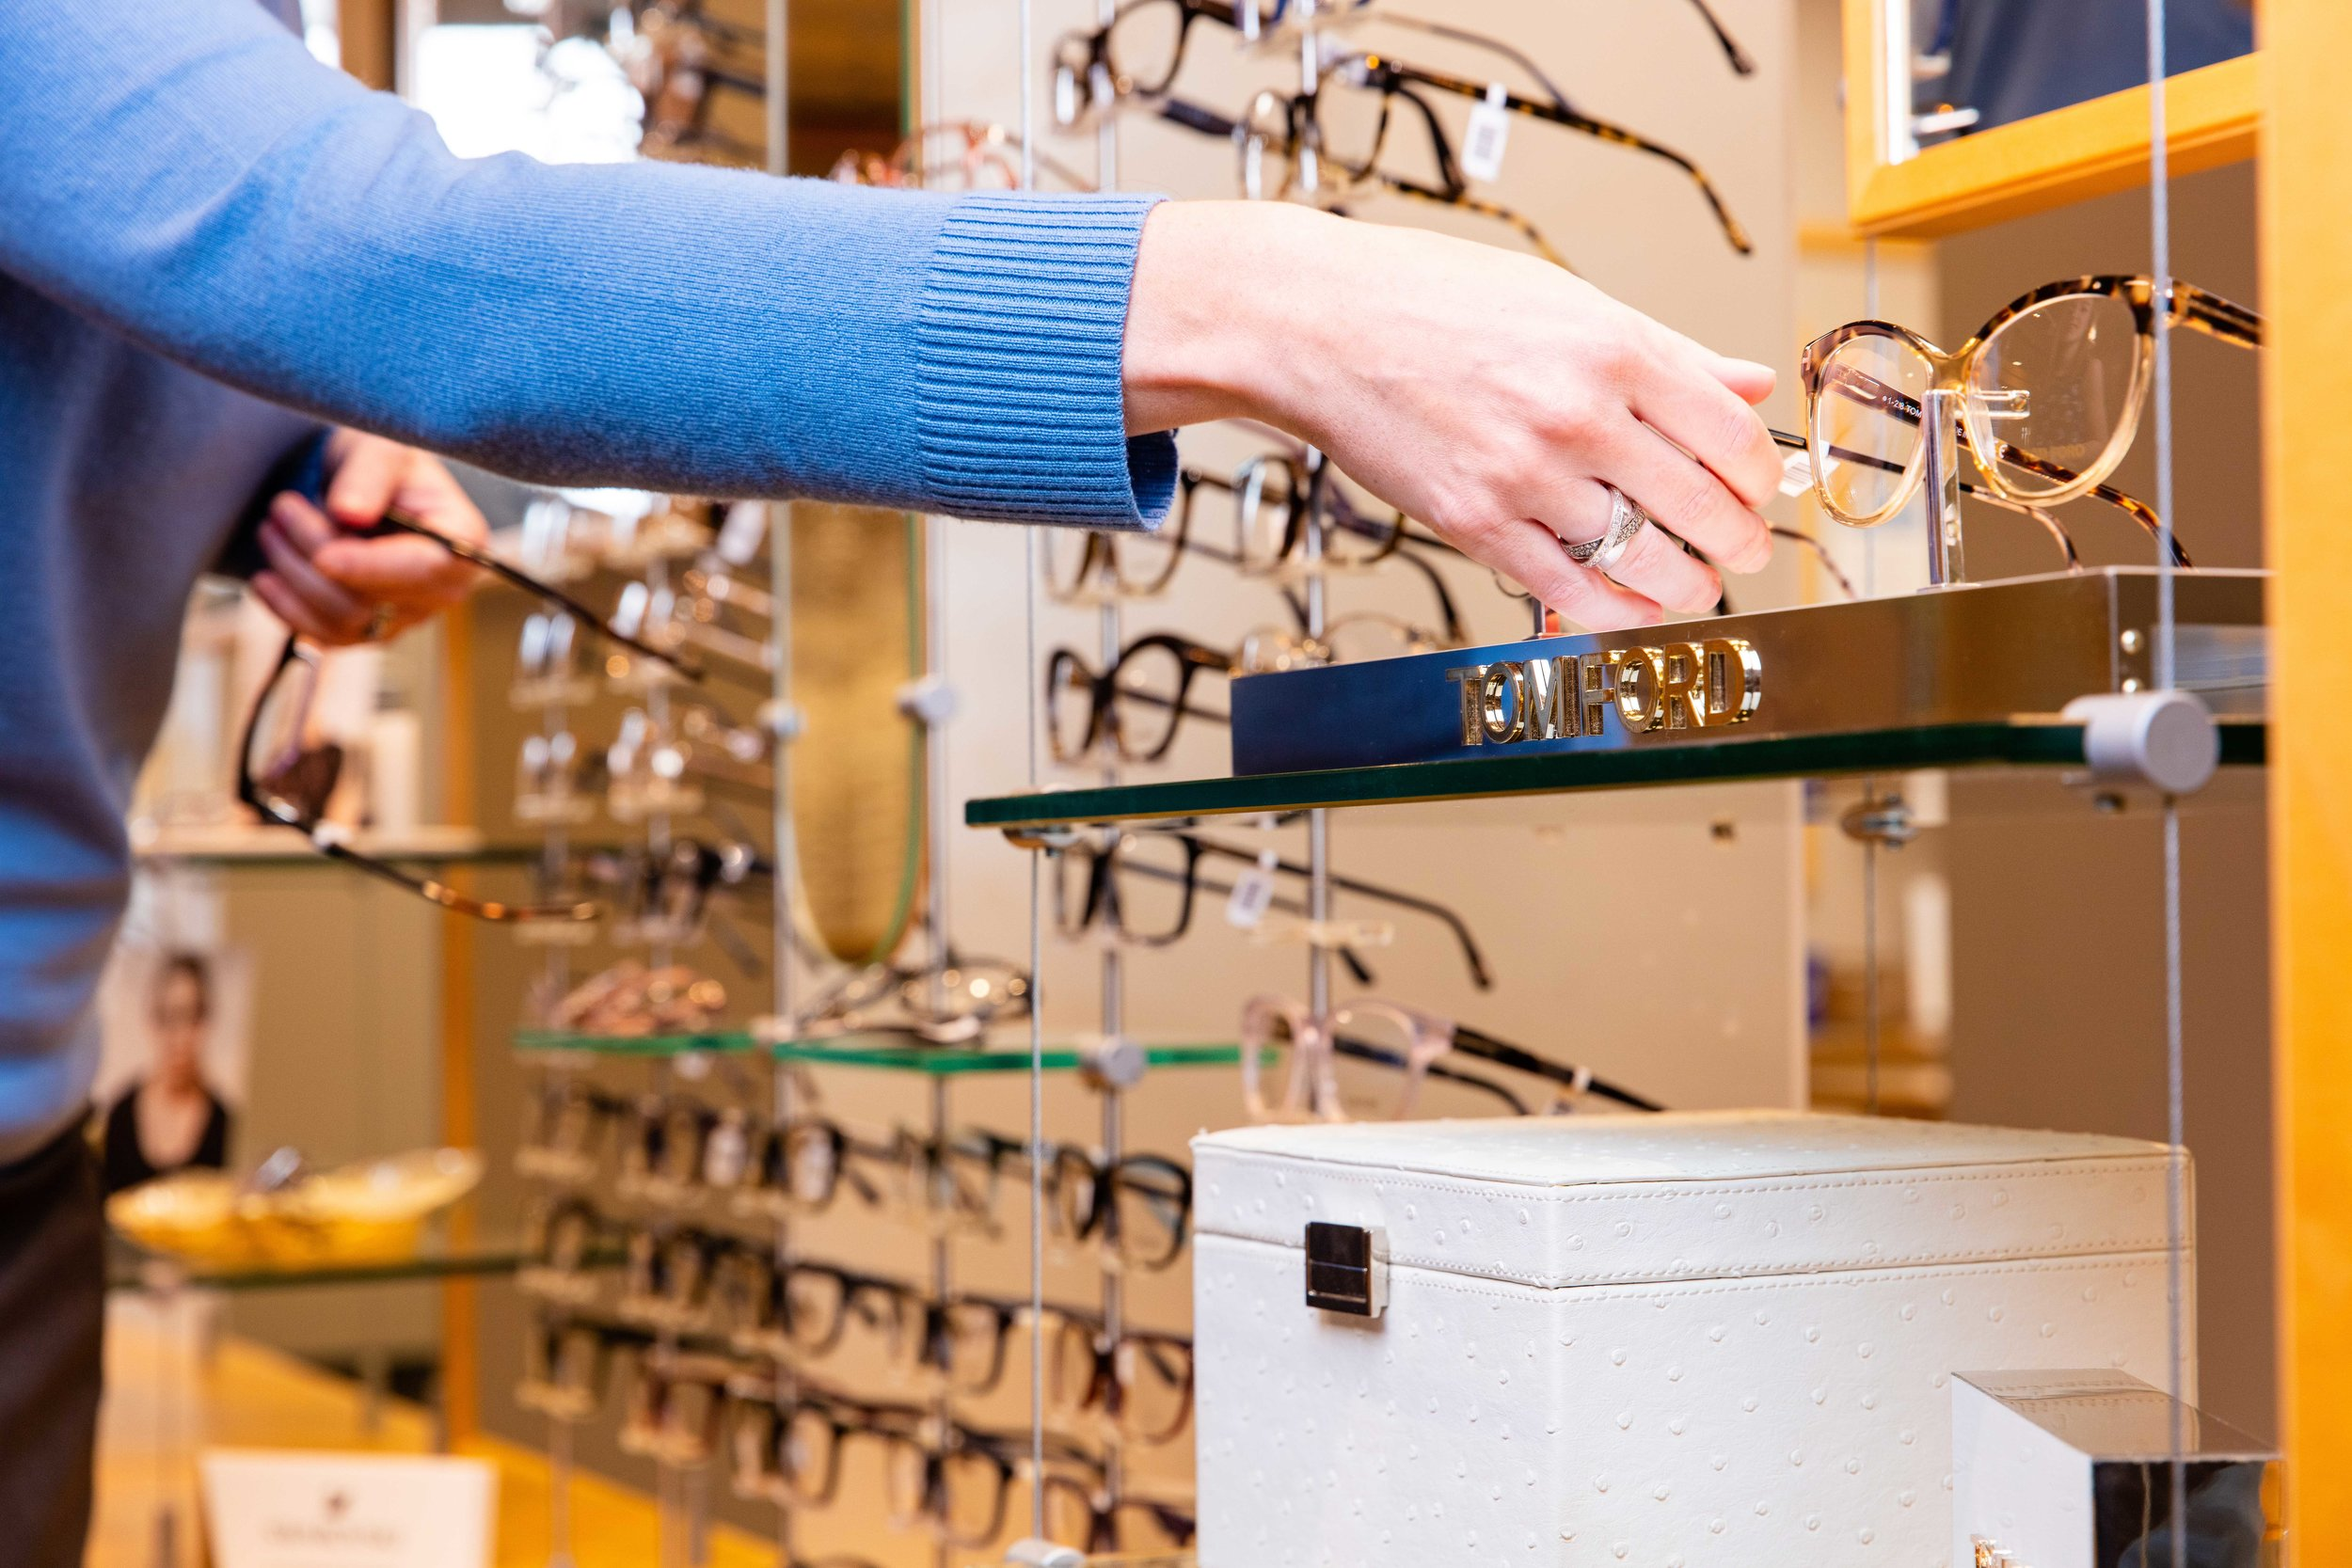 frame-selection-new-glasses-optician.jpg